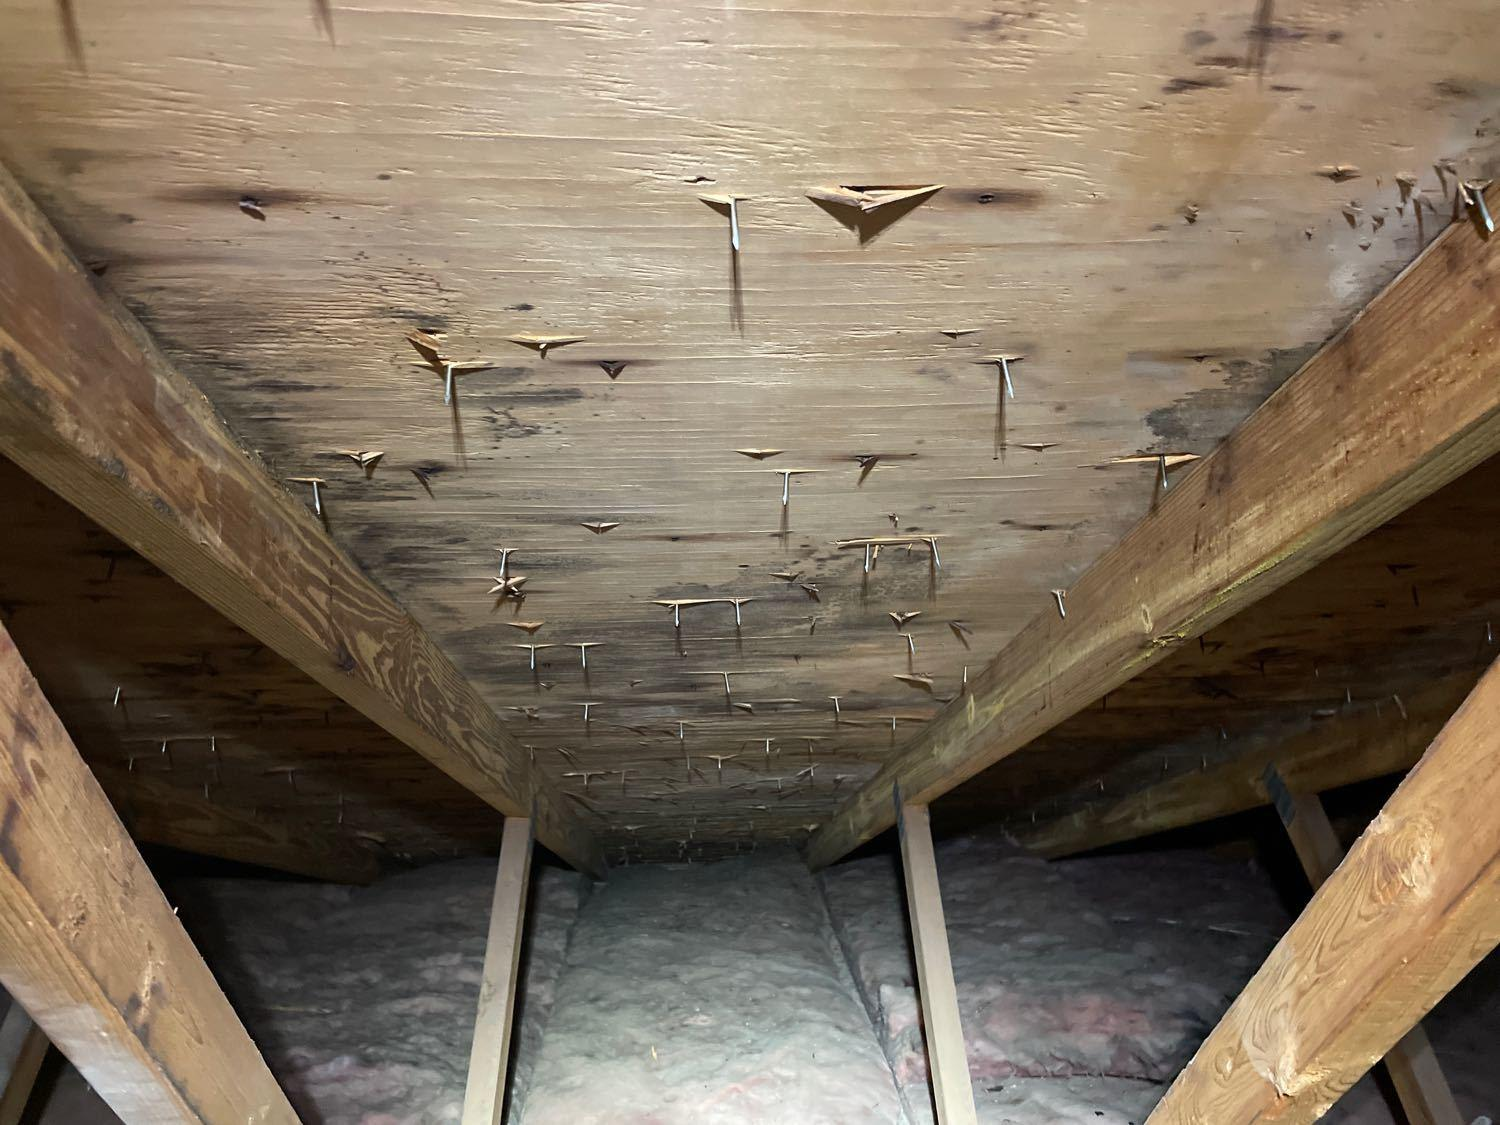 Mold on attic boards before removal